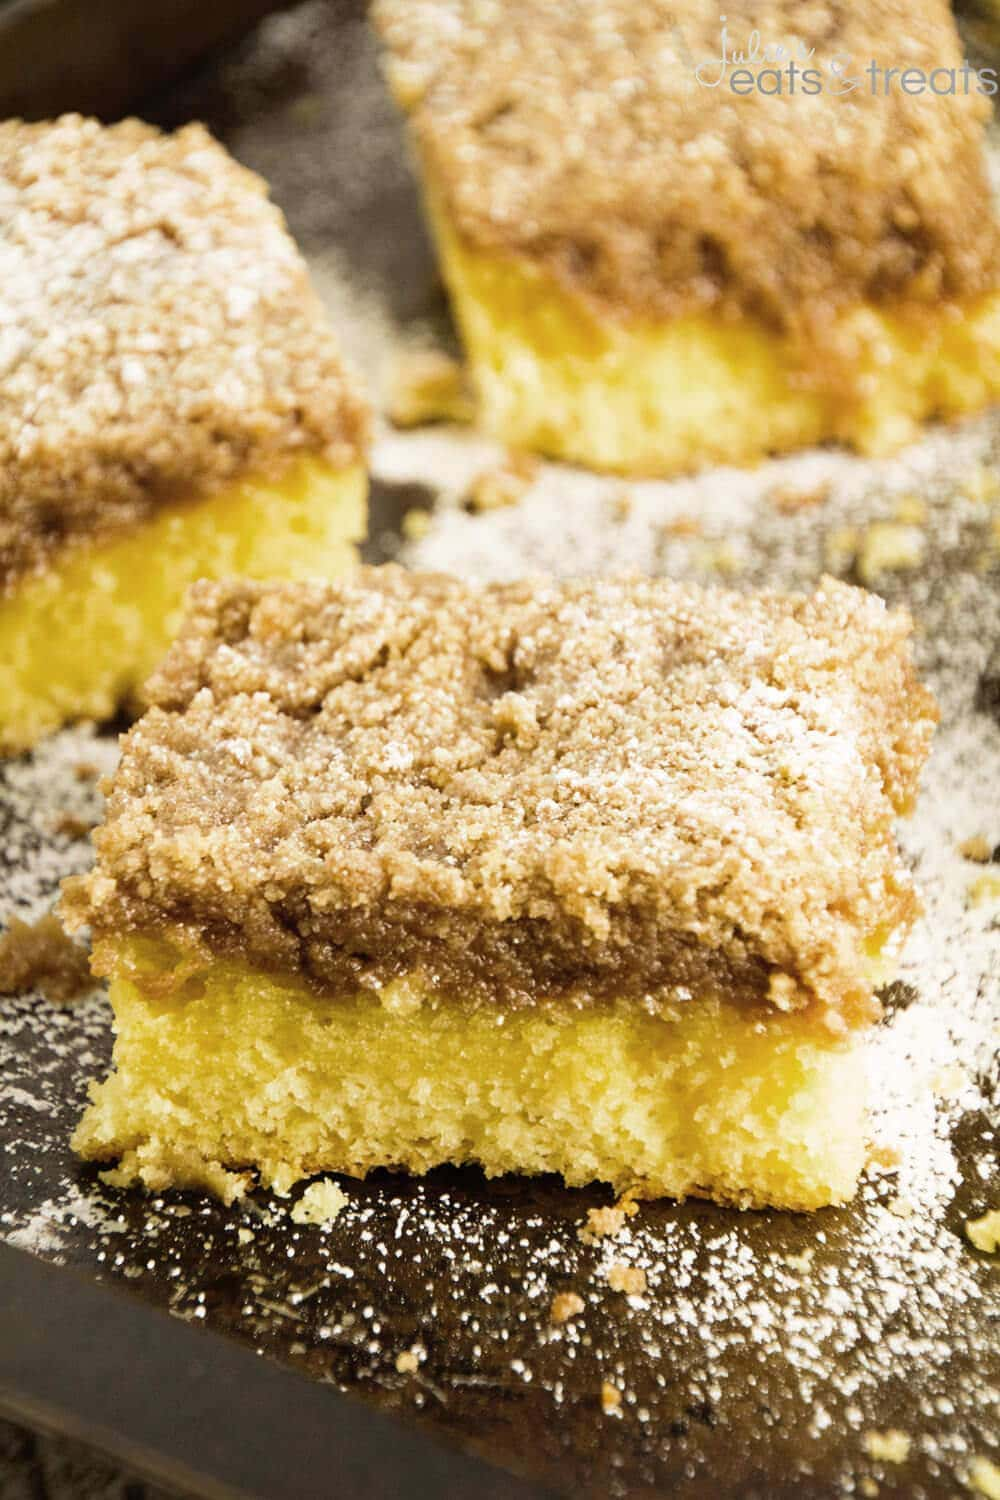 Super Crumb Cake ~ This Delicious Coffee Cake Recipe Starts with a Yellow Cake Mix and is Topped with a Thick Crumb Layer! Crumb Lovers Won't Be Able To Stop With One Piece!